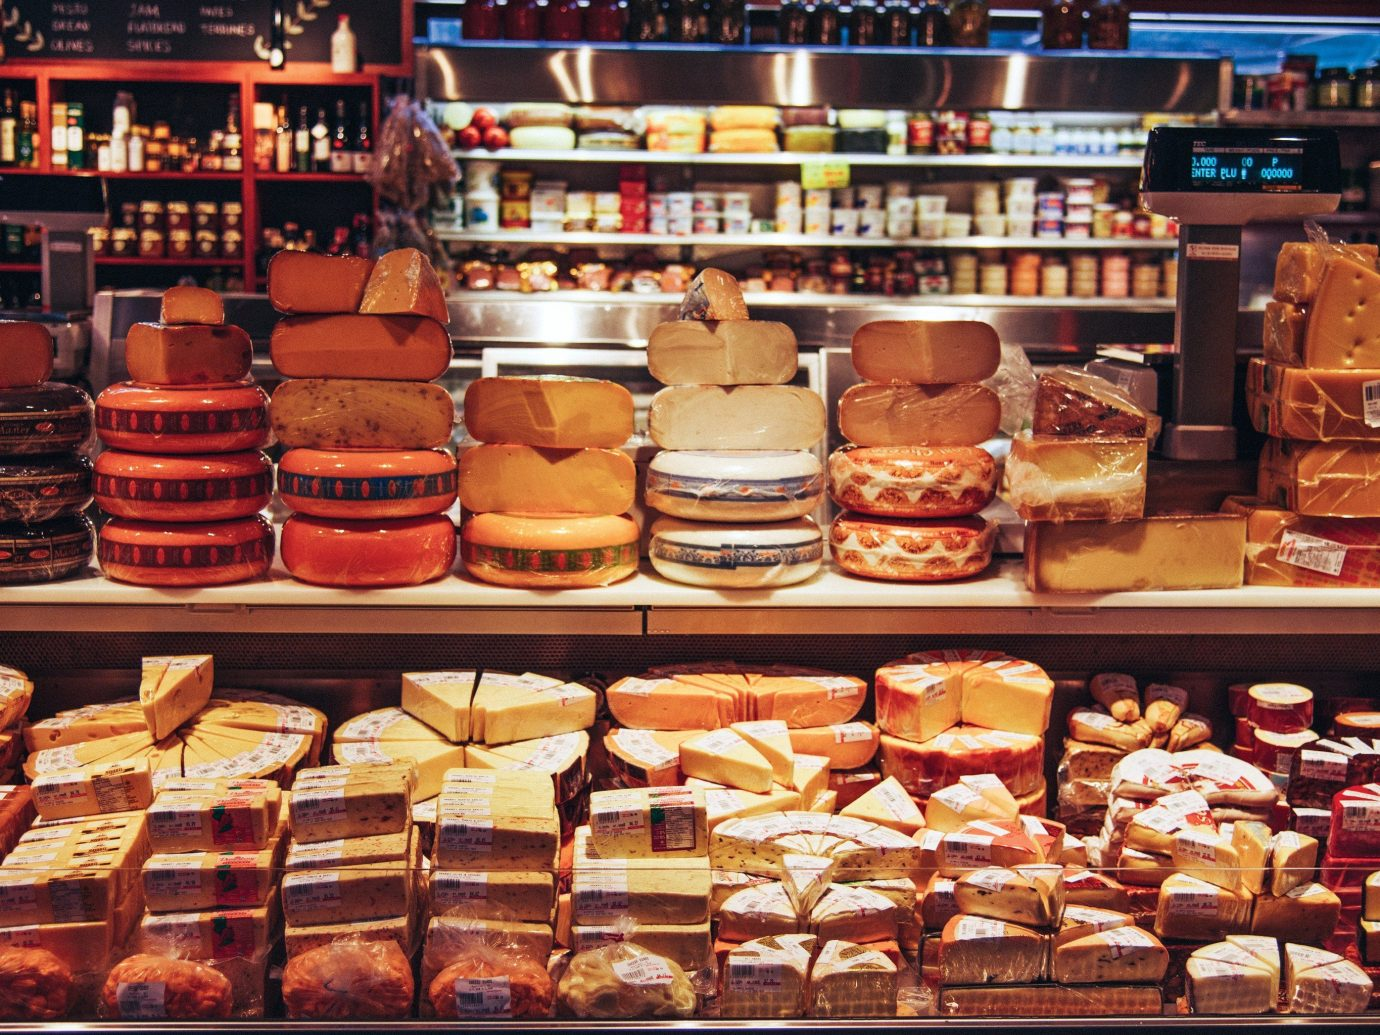 Canada Montreal Toronto Trip Ideas indoor food pâtisserie scene bakery pastry shelf delicatessen sweet grocery store meal store Shop several